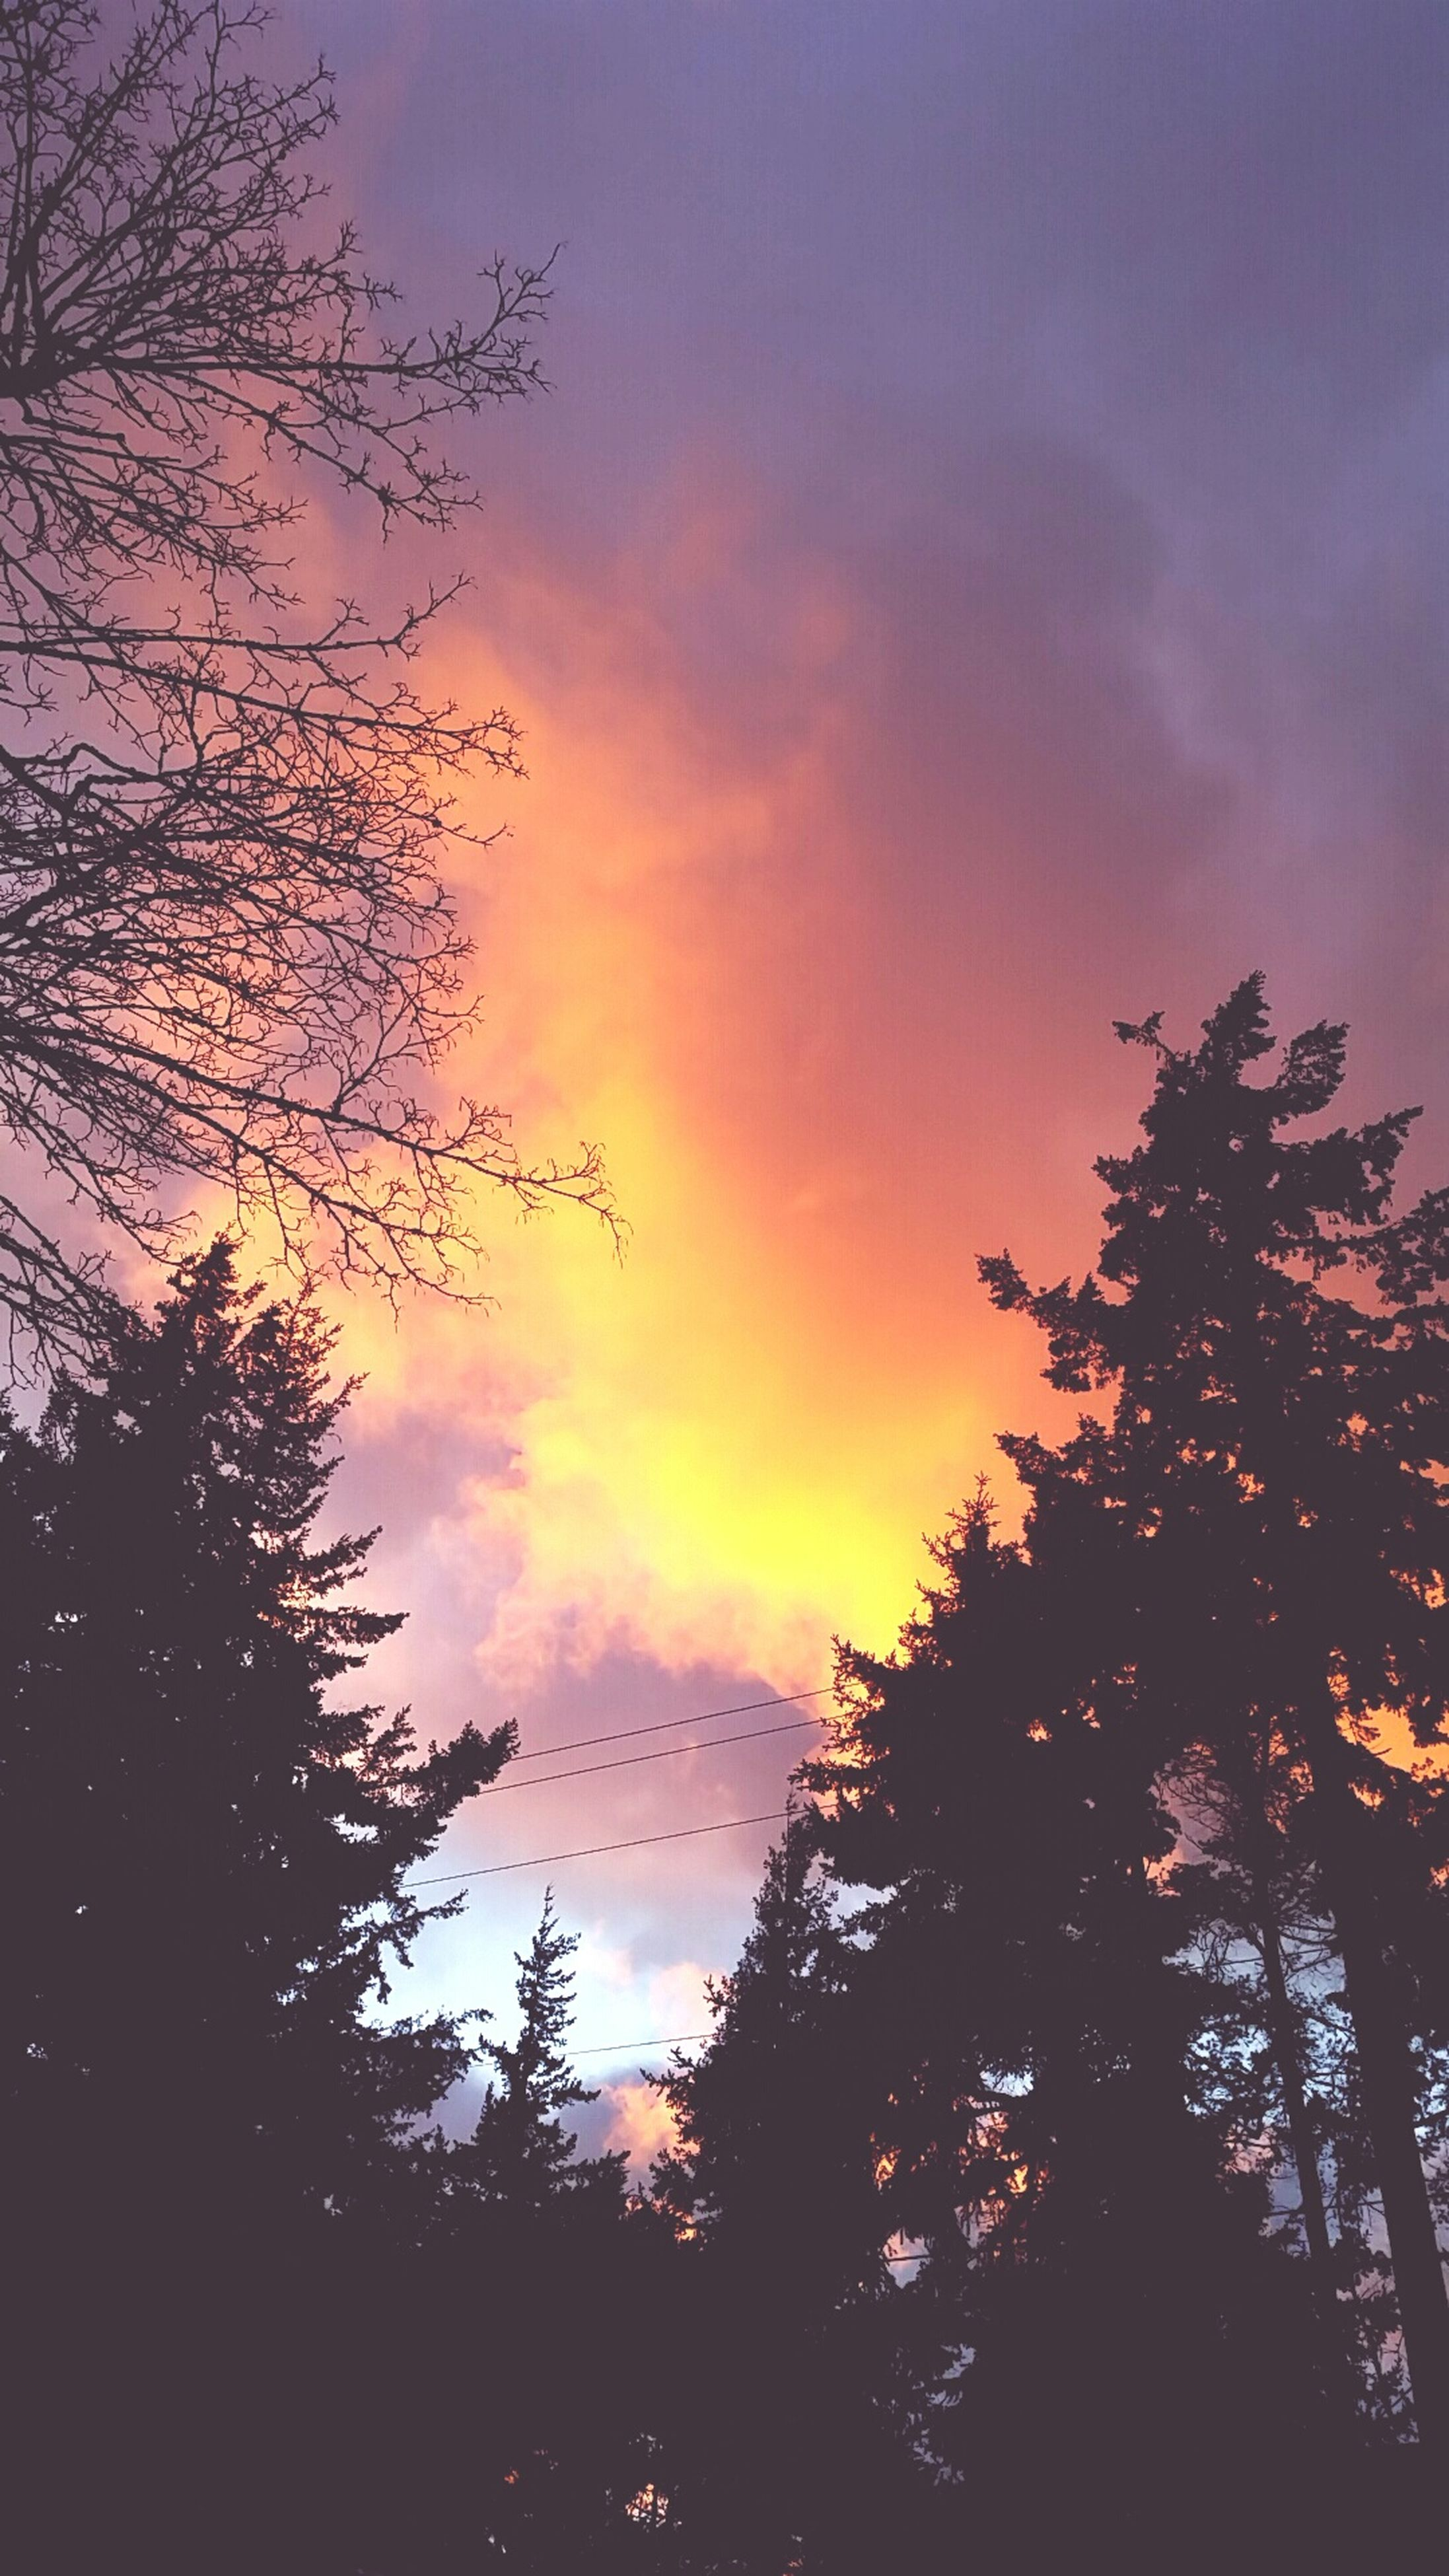 sunset, silhouette, sky, tree, beauty in nature, cloud - sky, scenics, tranquility, orange color, tranquil scene, nature, low angle view, idyllic, cloud, cloudy, dramatic sky, branch, dusk, growth, outdoors